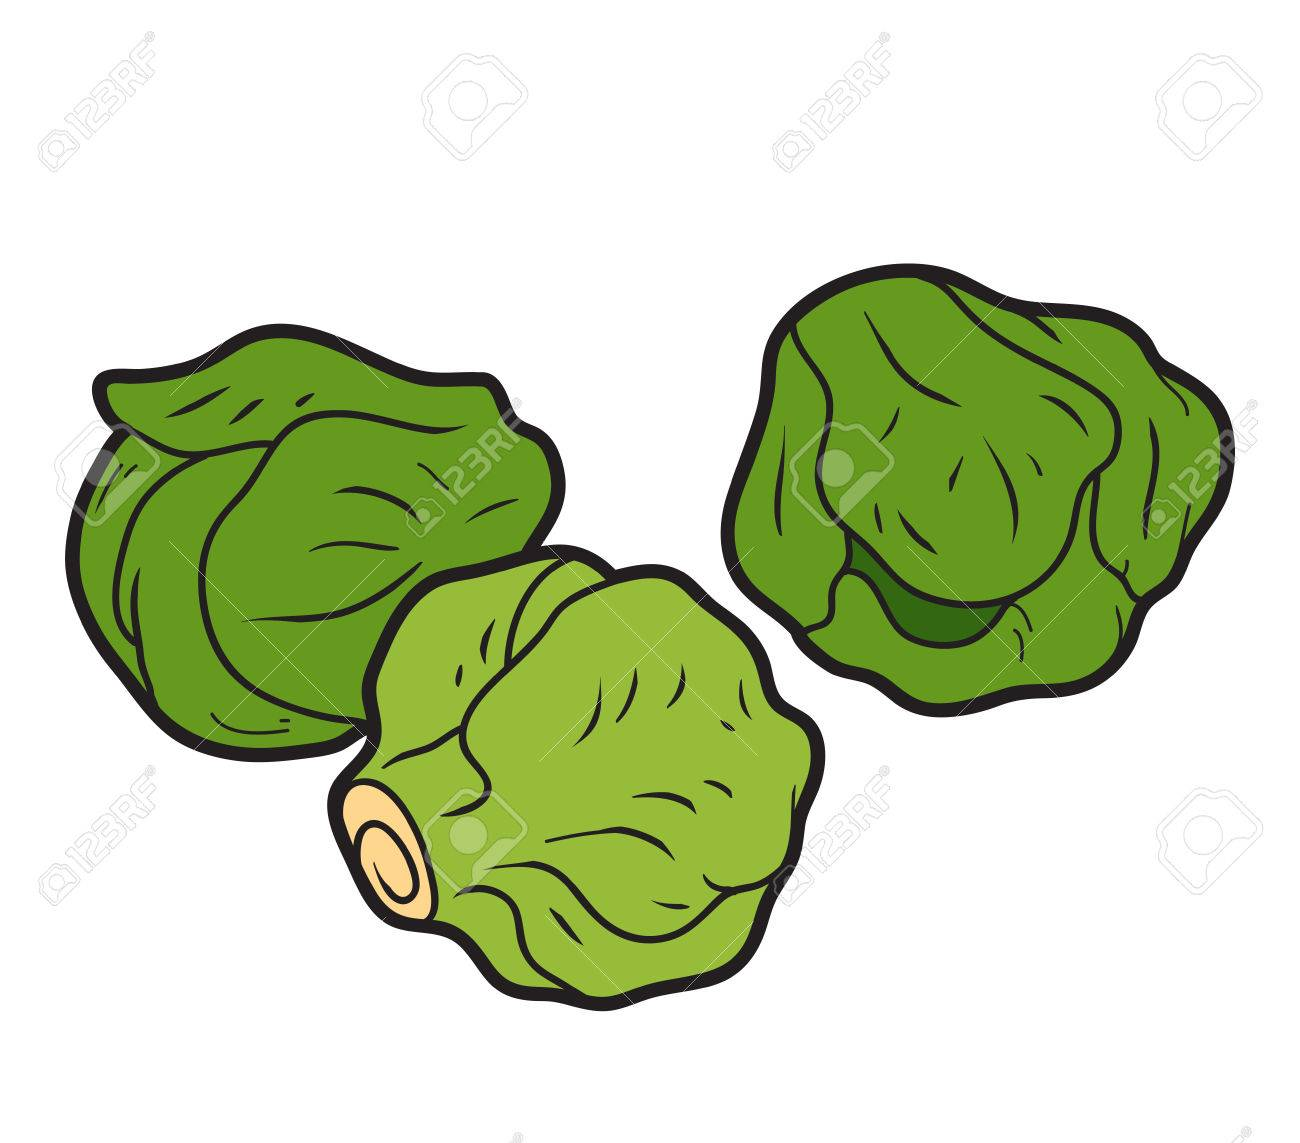 Clipart sprouts clip art library Sprouts Cliparts - Making-The-Web.com clip art library